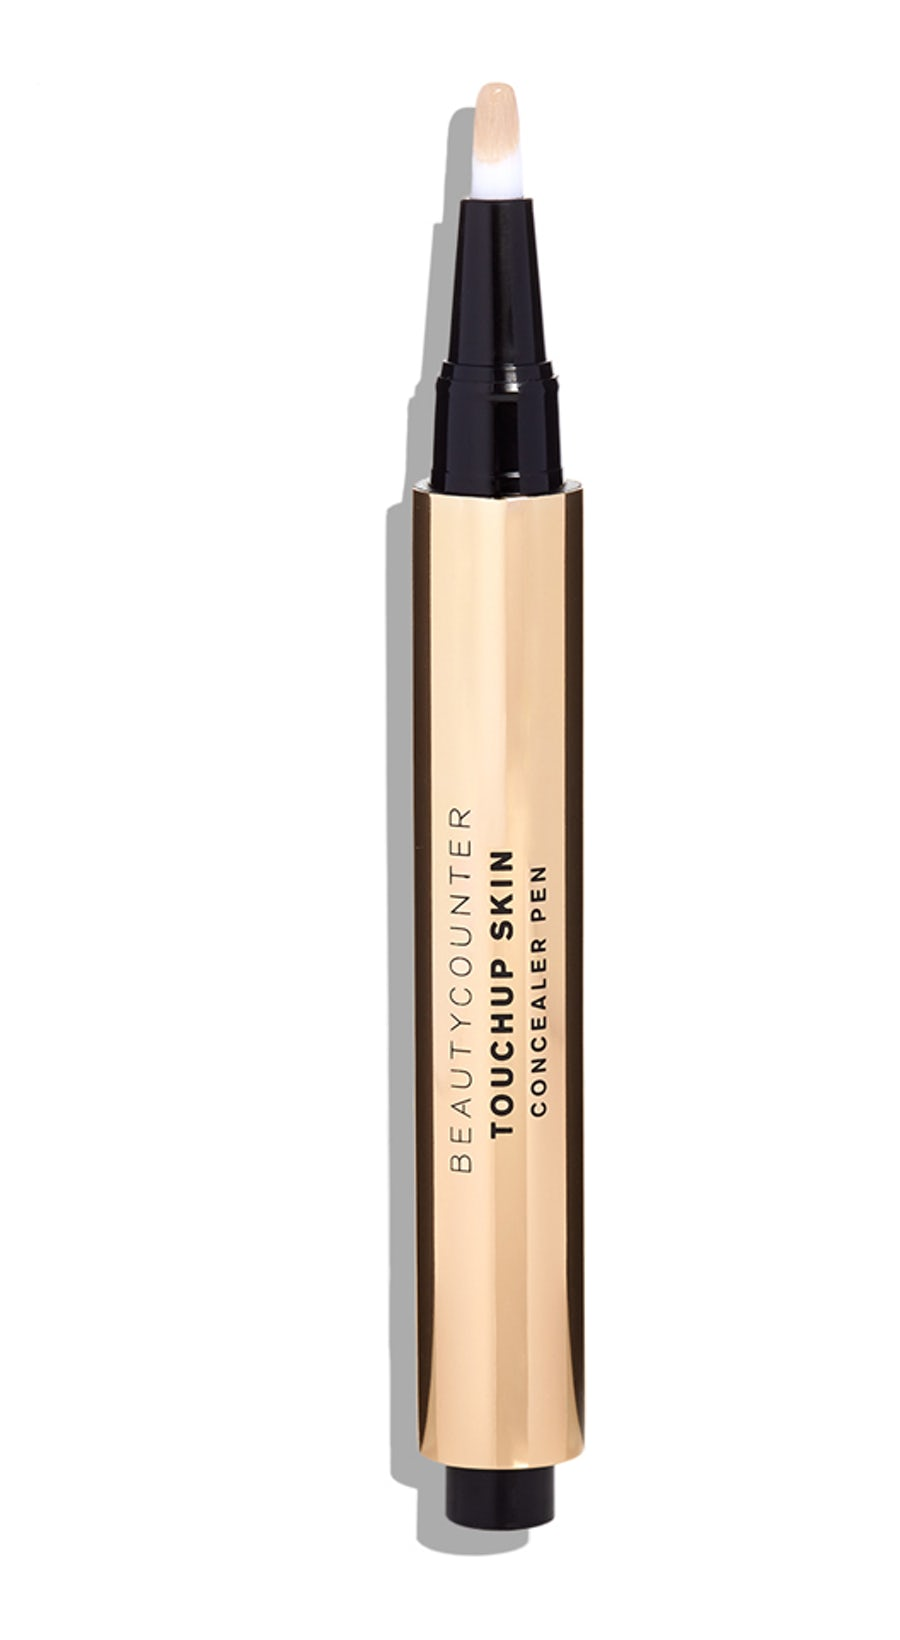 Concealer Touchup Pen - I am all about concealer, especially since I have a toddler running around! Those undereye circles aren't going to hide themselves! This clickable pen disperses the perfect amount of product making the application flawless. The concealer itself is lightweight, and never cakey.